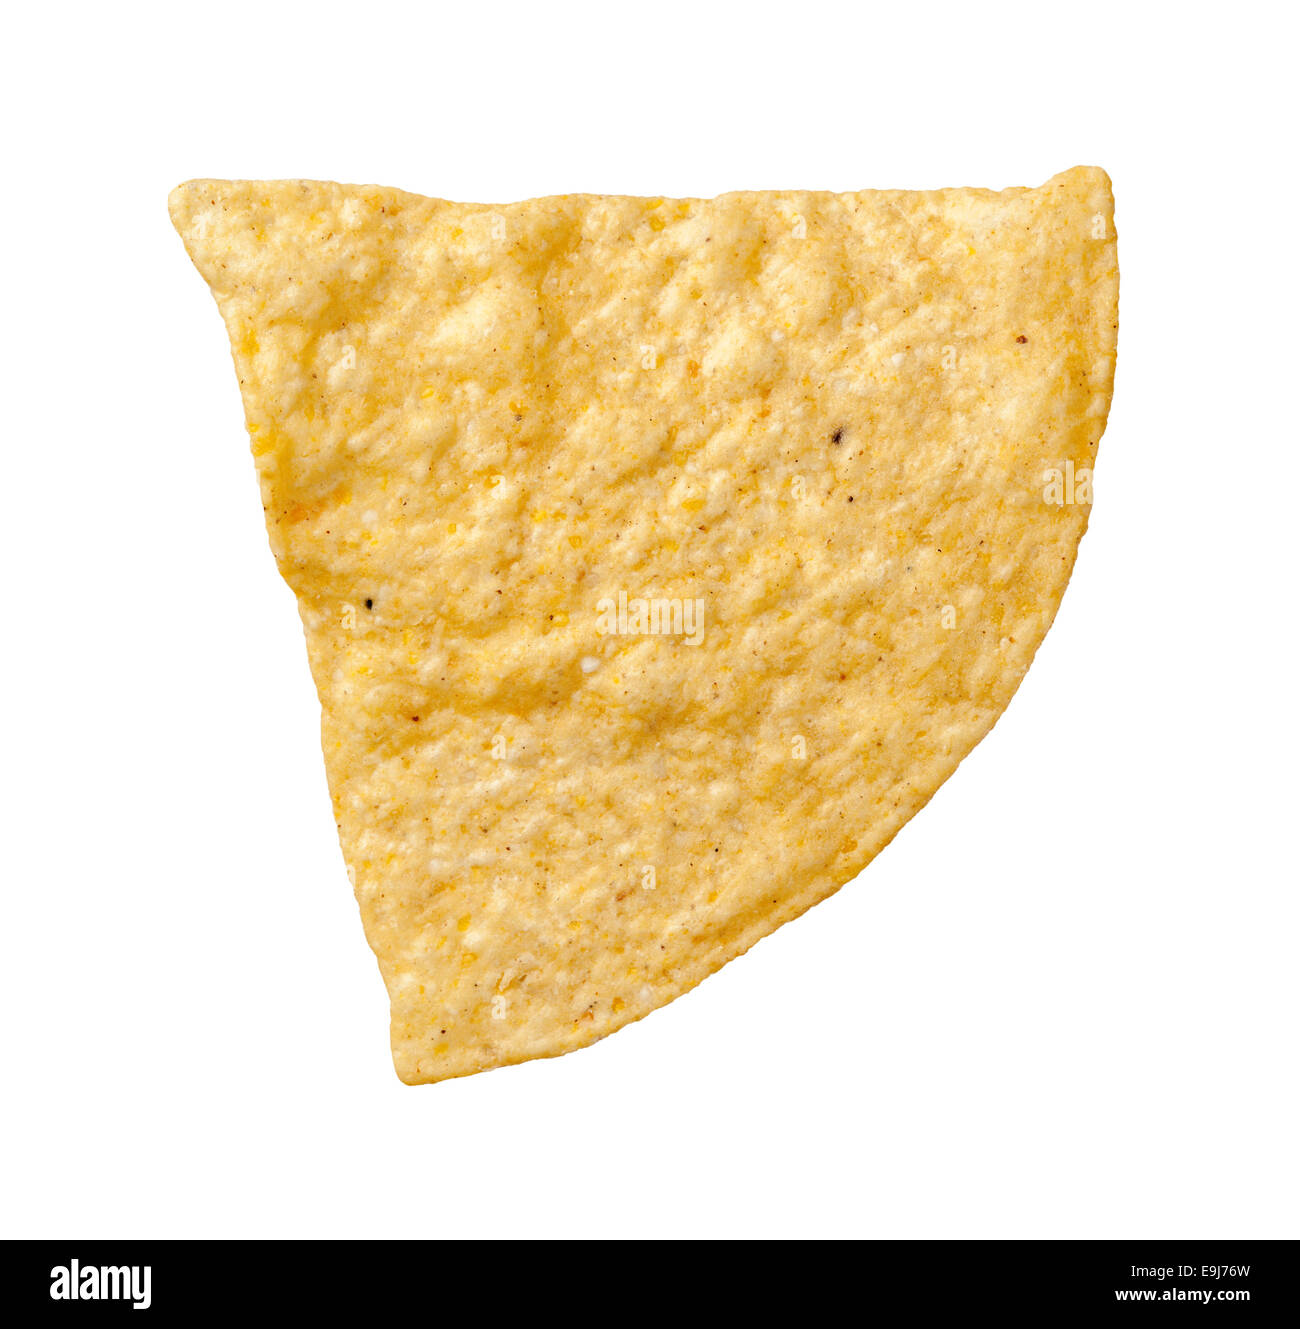 A single tortilla chip isolated on a white background. Tortillas are a salty snack associated with parties. Stock Photo